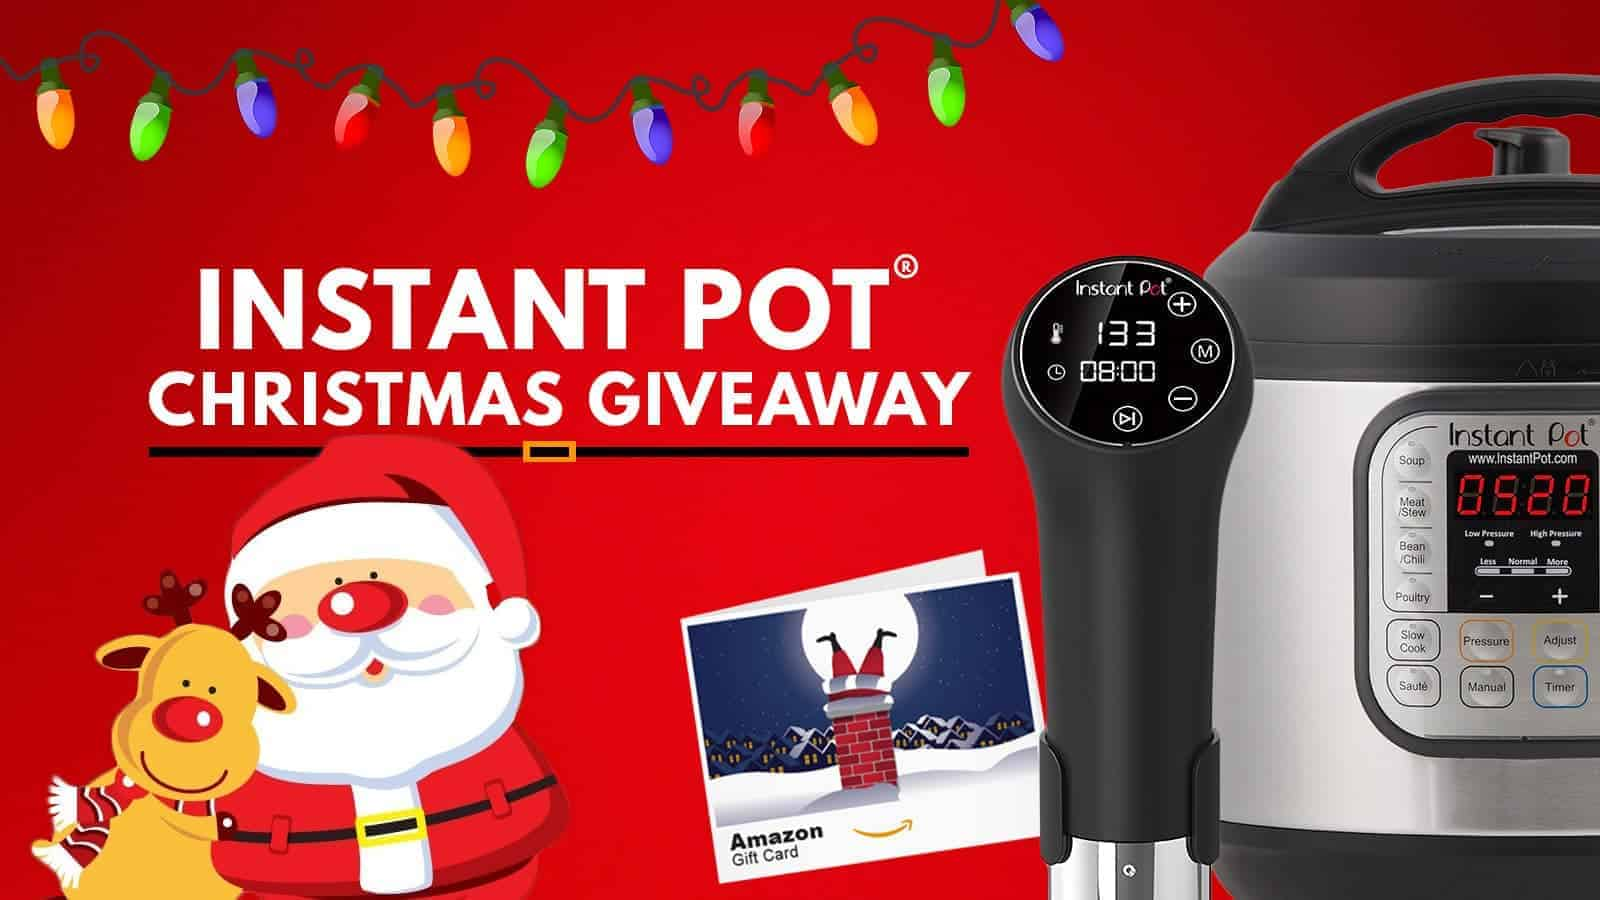 Instant Pot Christmas Giveaway